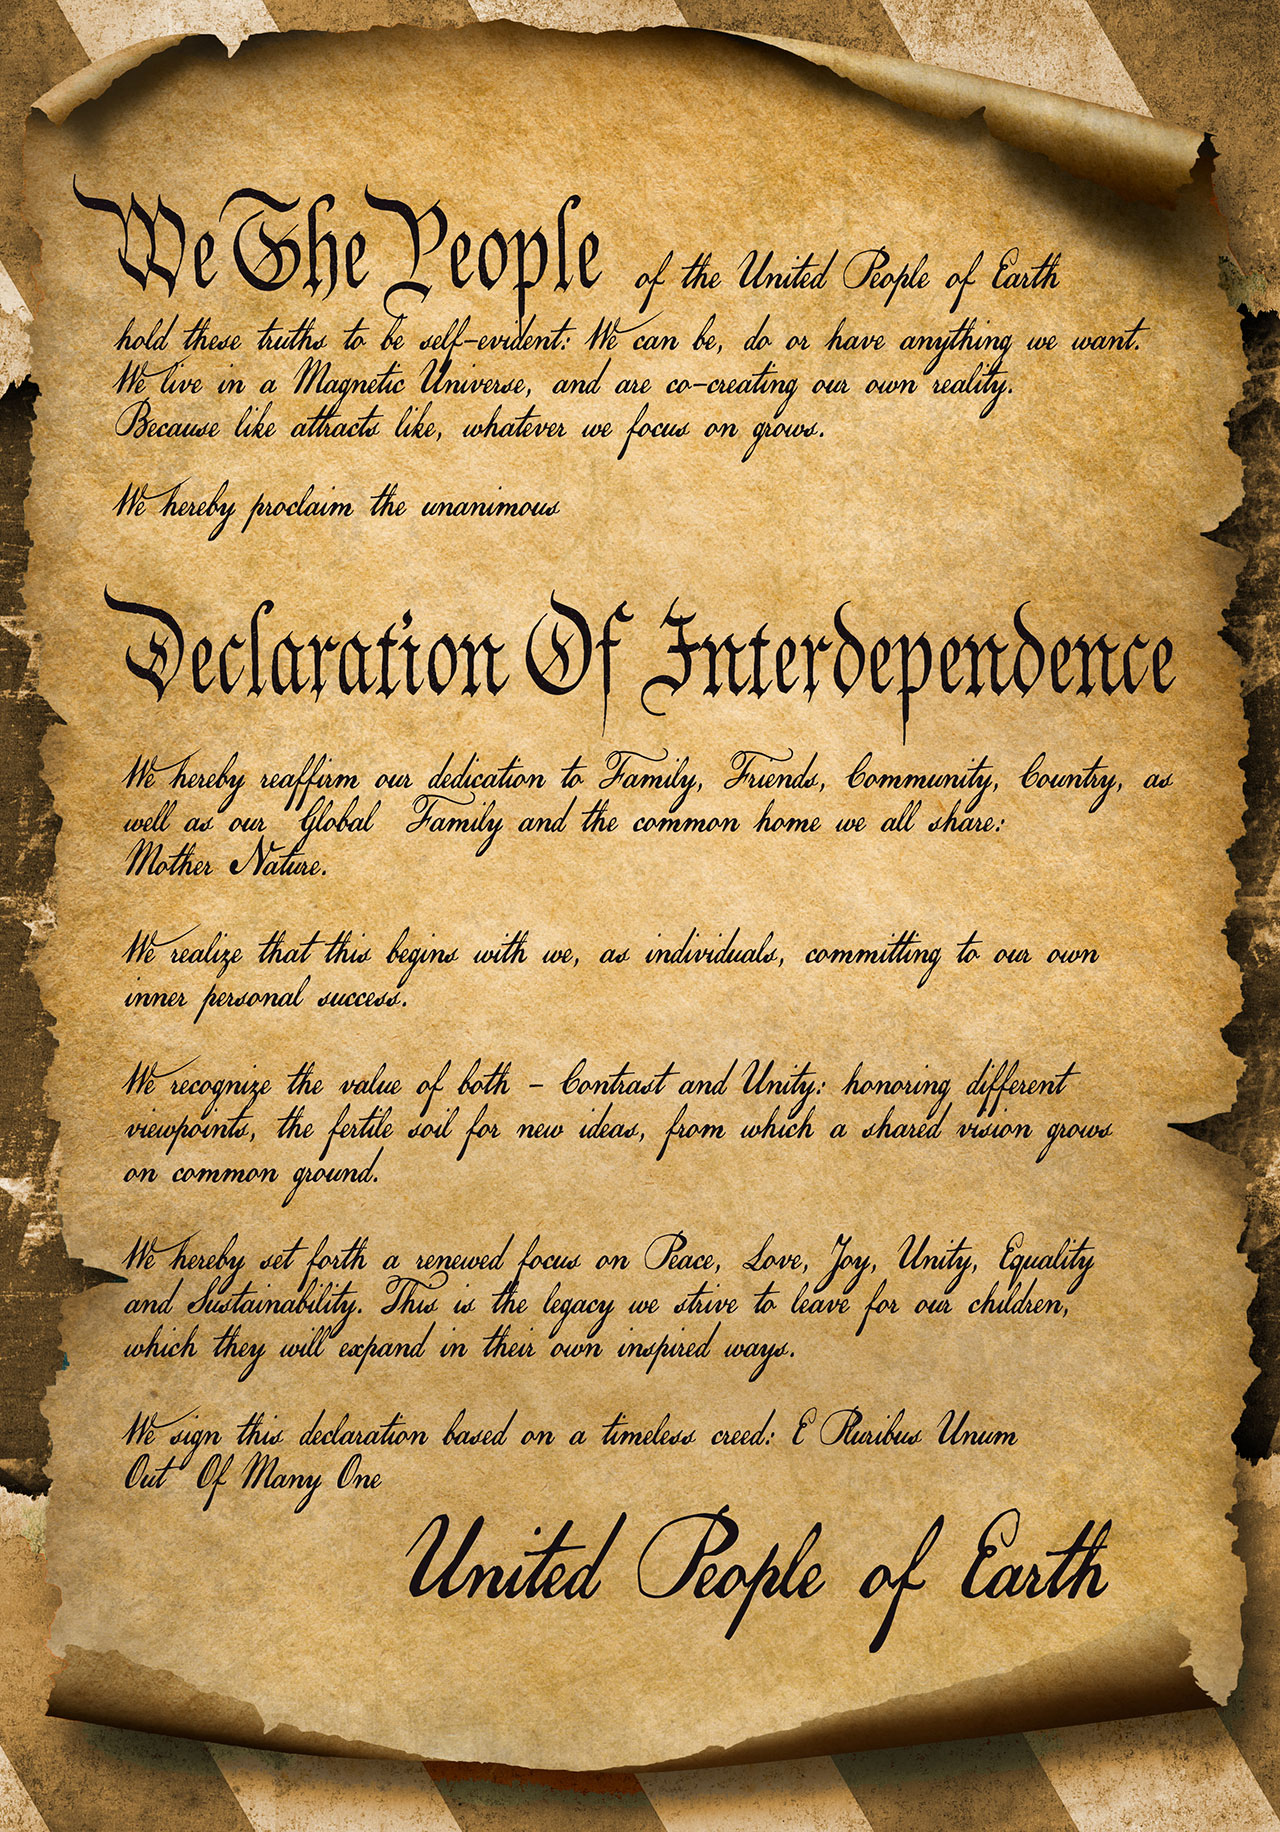 declaration-of-interdependence2c